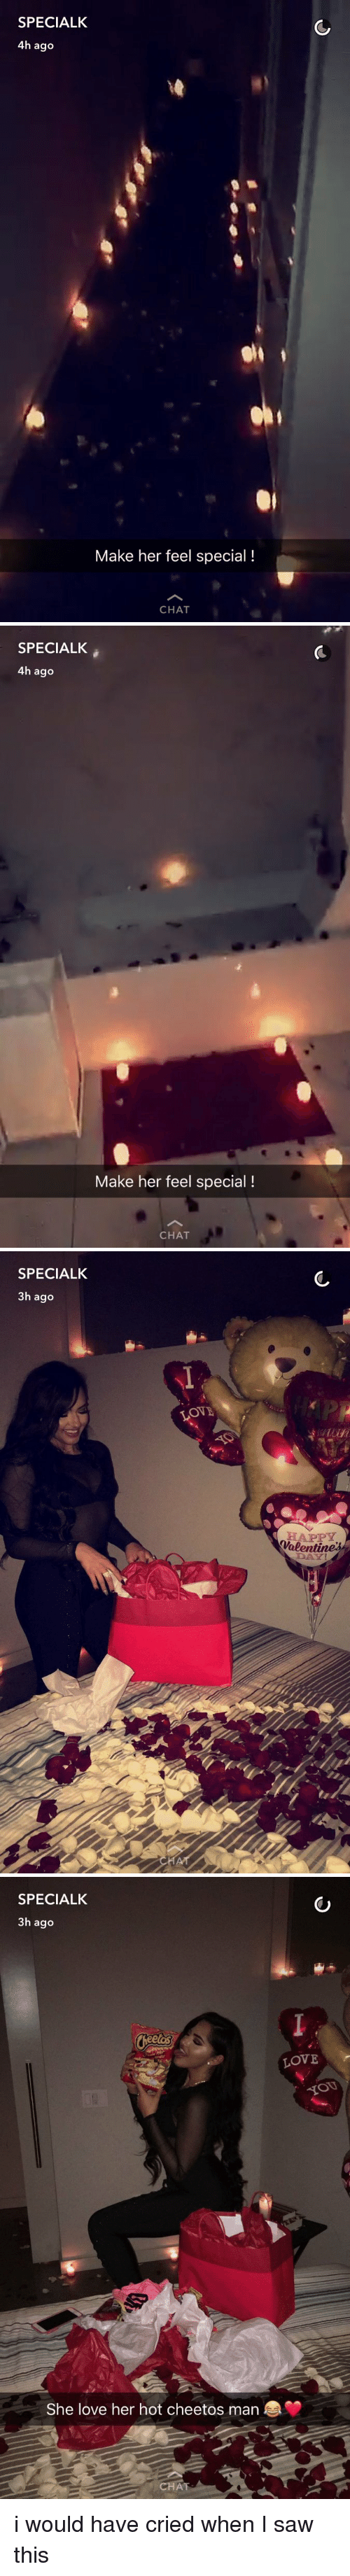 how to make my man feel special